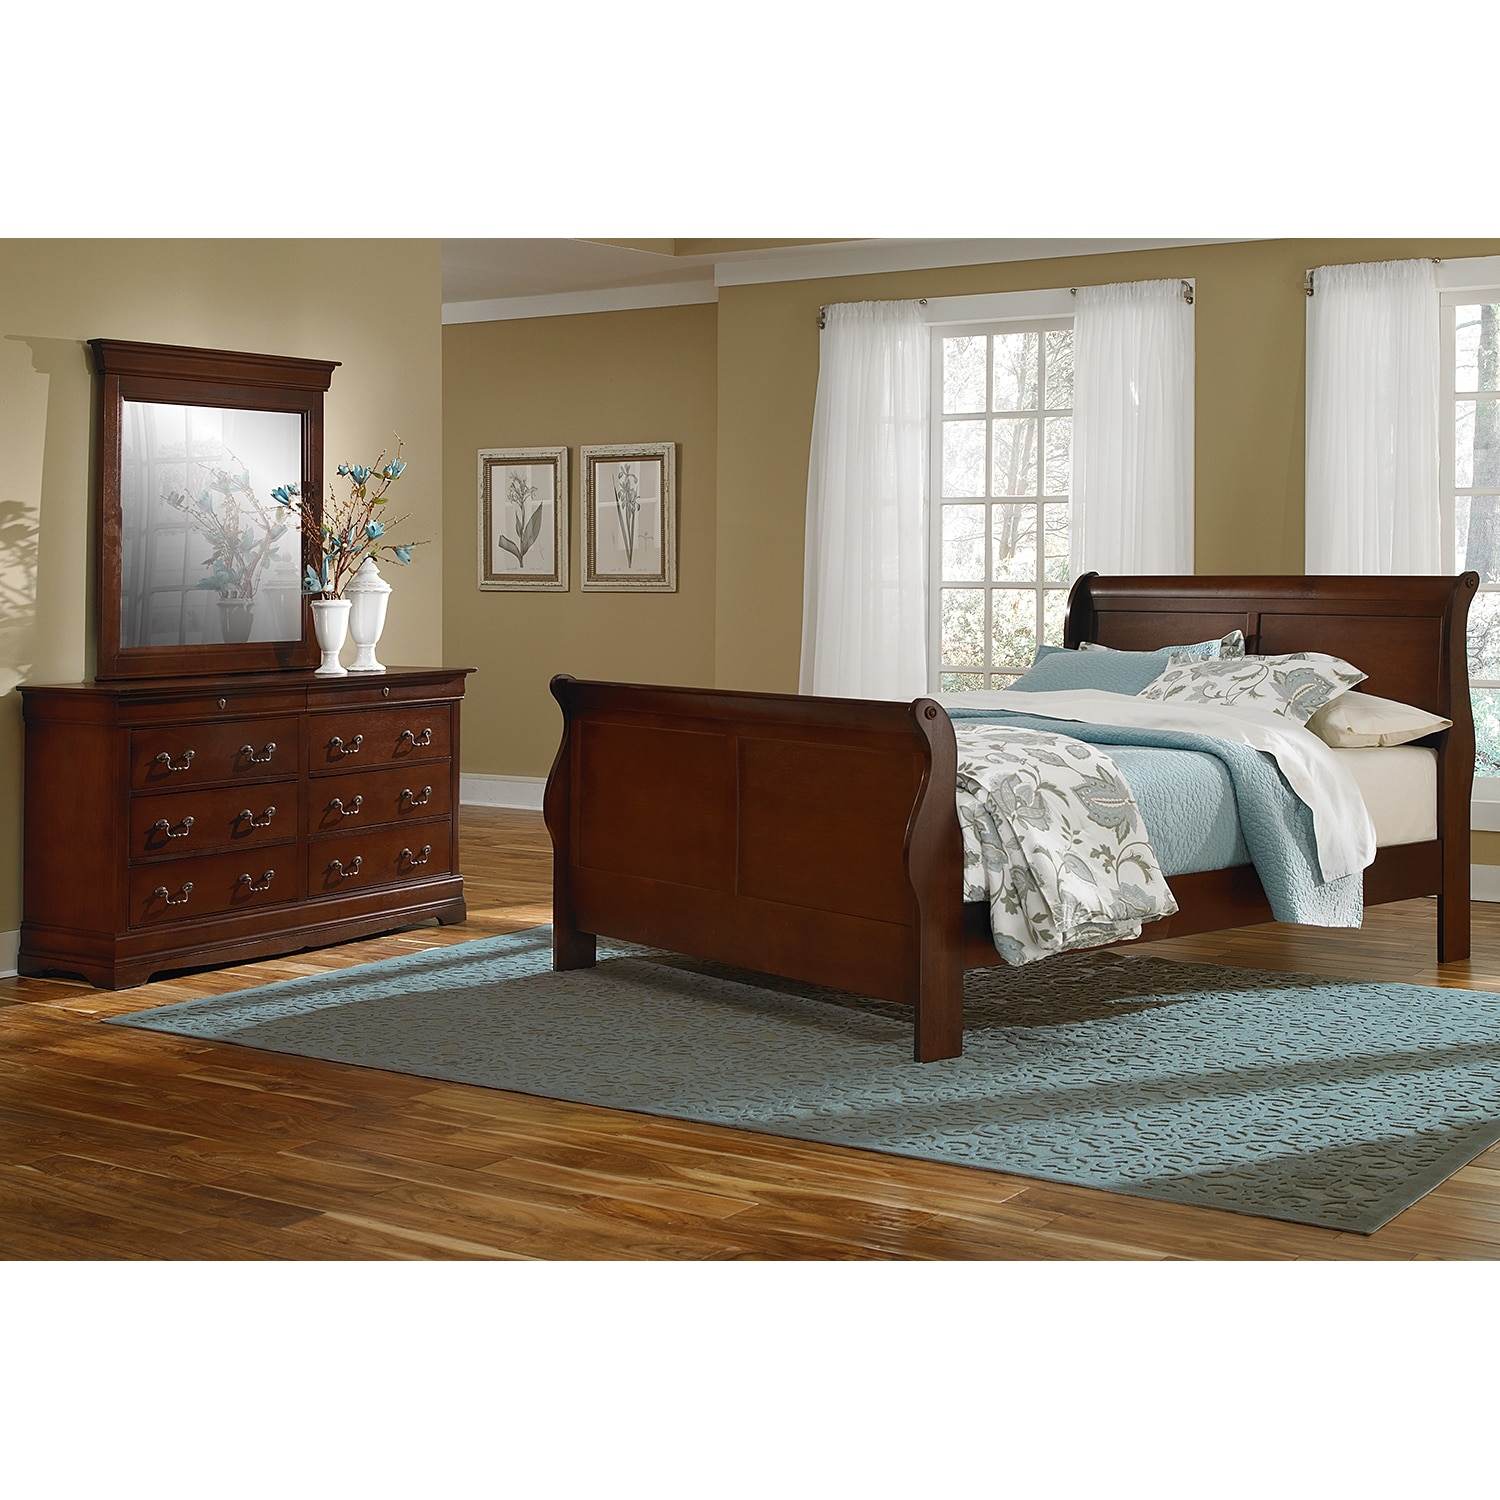 Bedroom Furniture - Neo Classic Youth 5-Piece Full Bedroom Set- Cherry